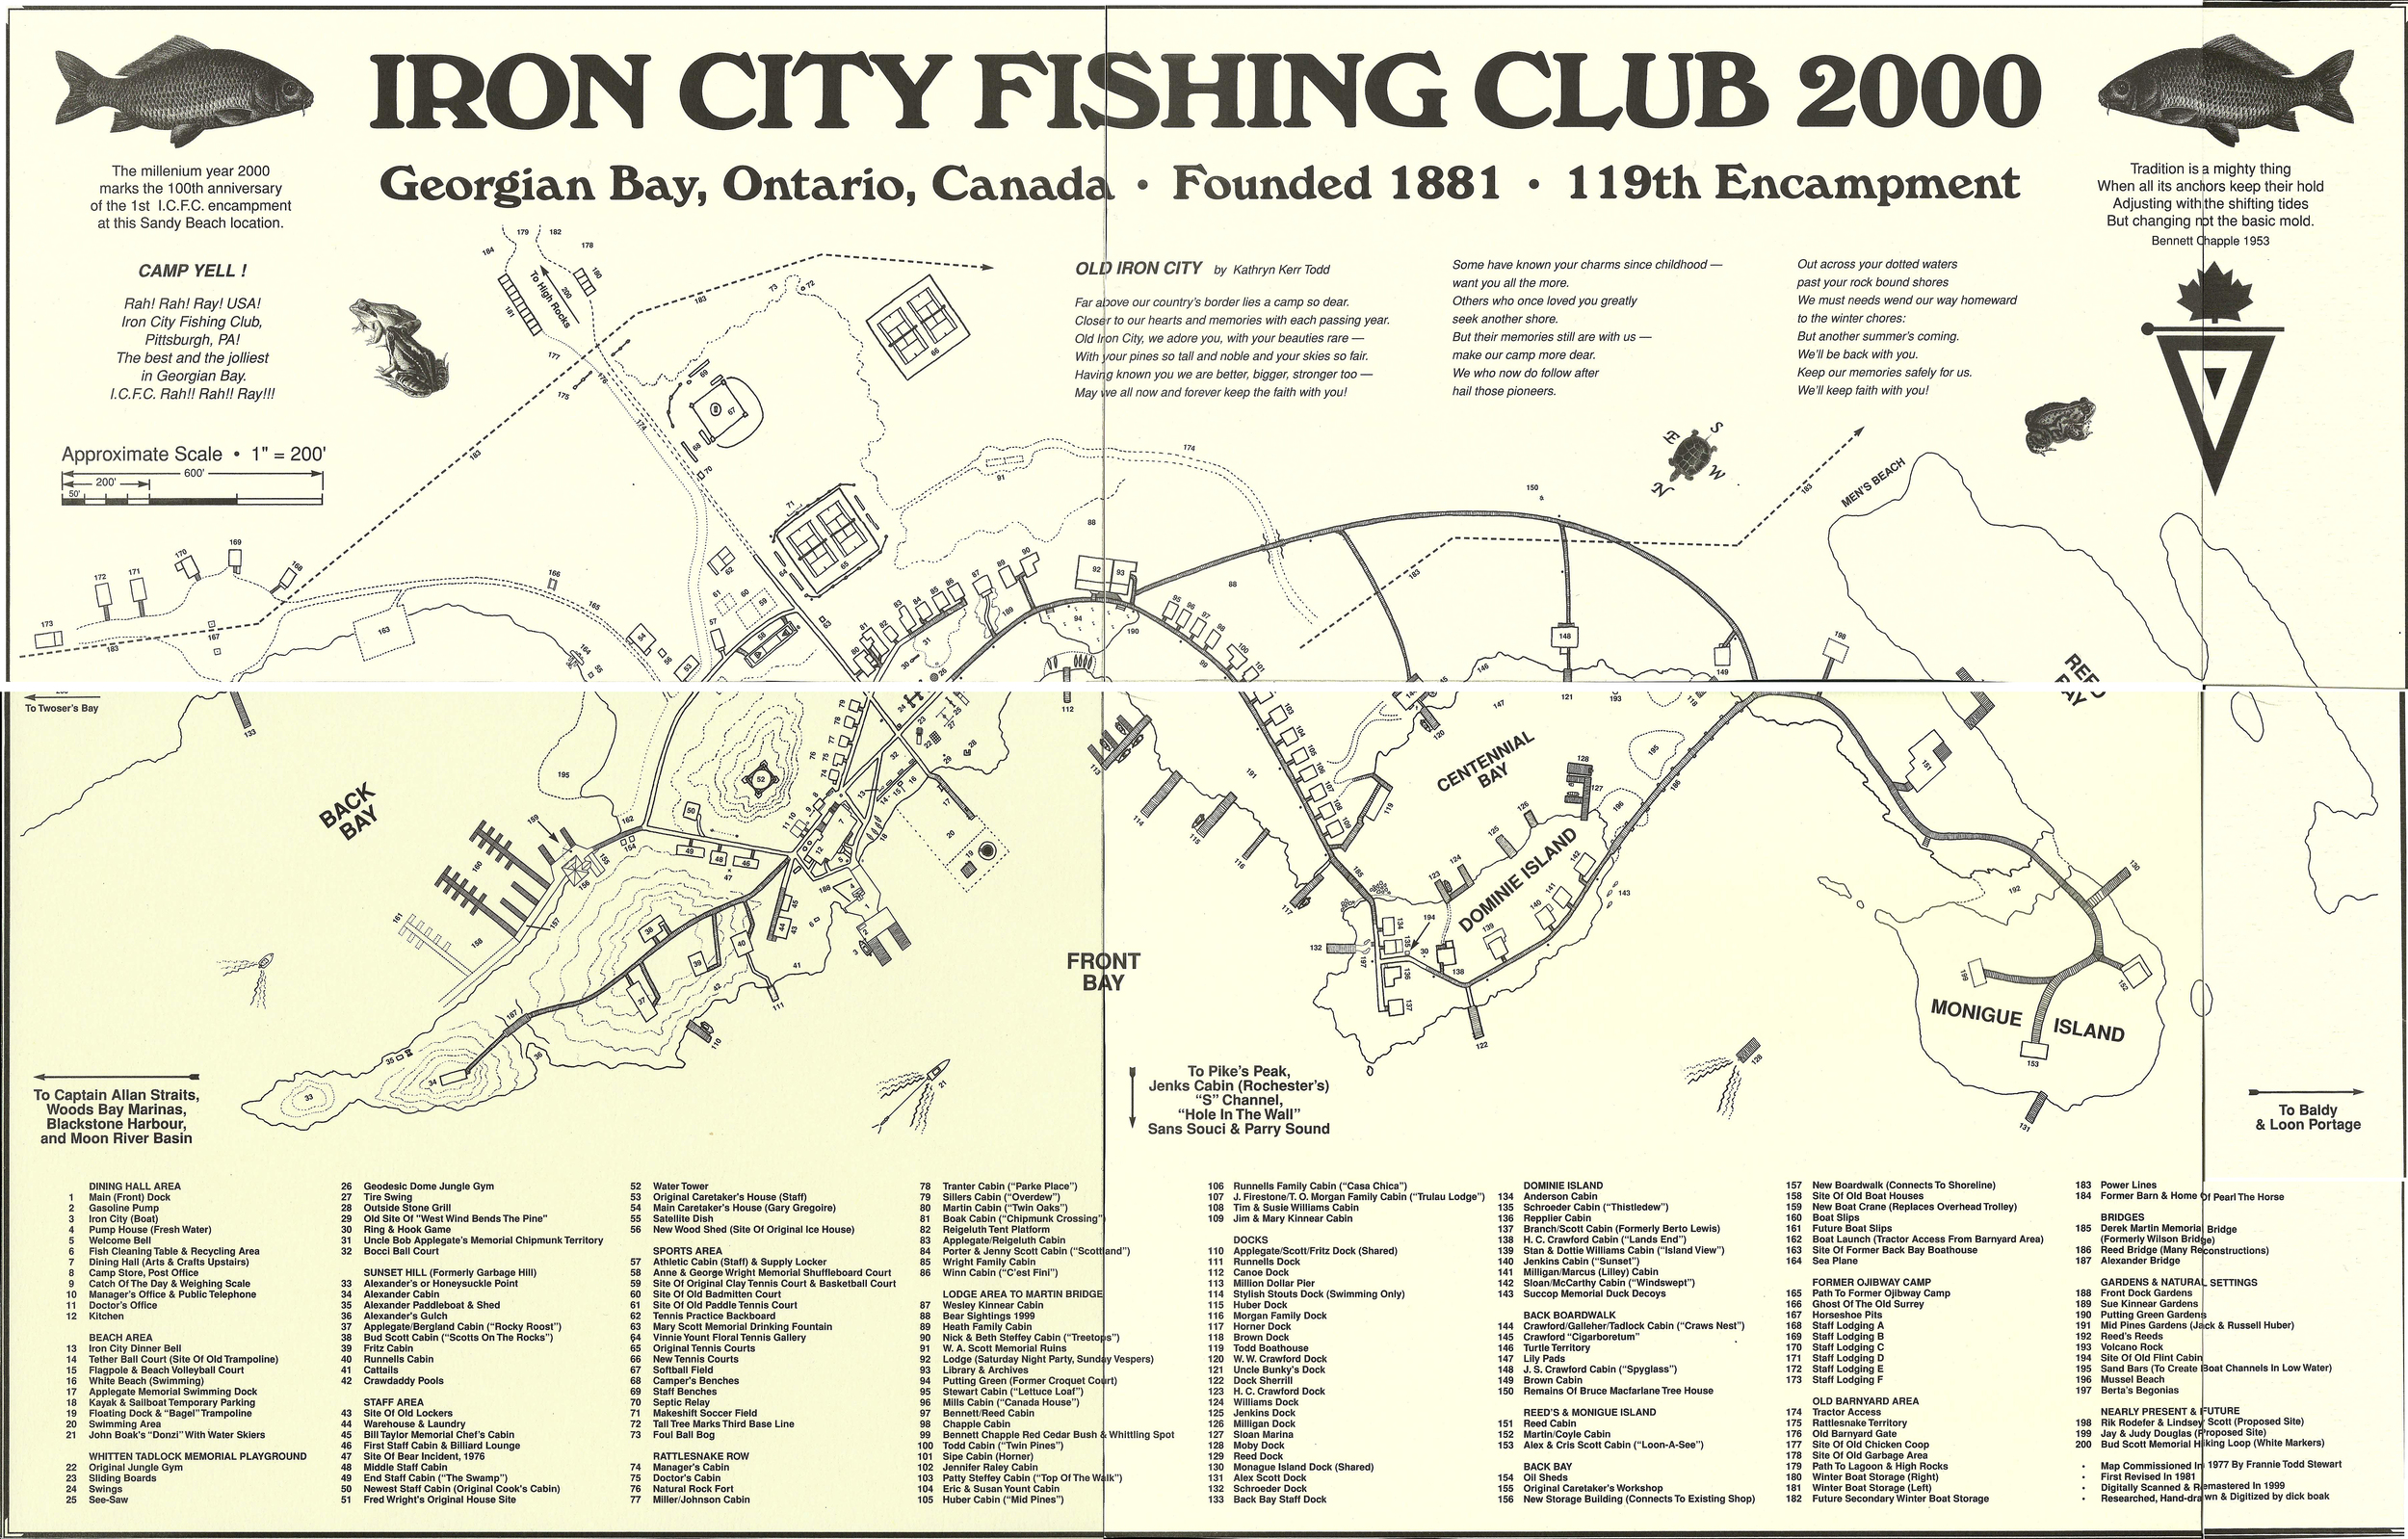 ICFC, as it was in 2000. A few cabins have been added, two of which fall outside the range of this map.